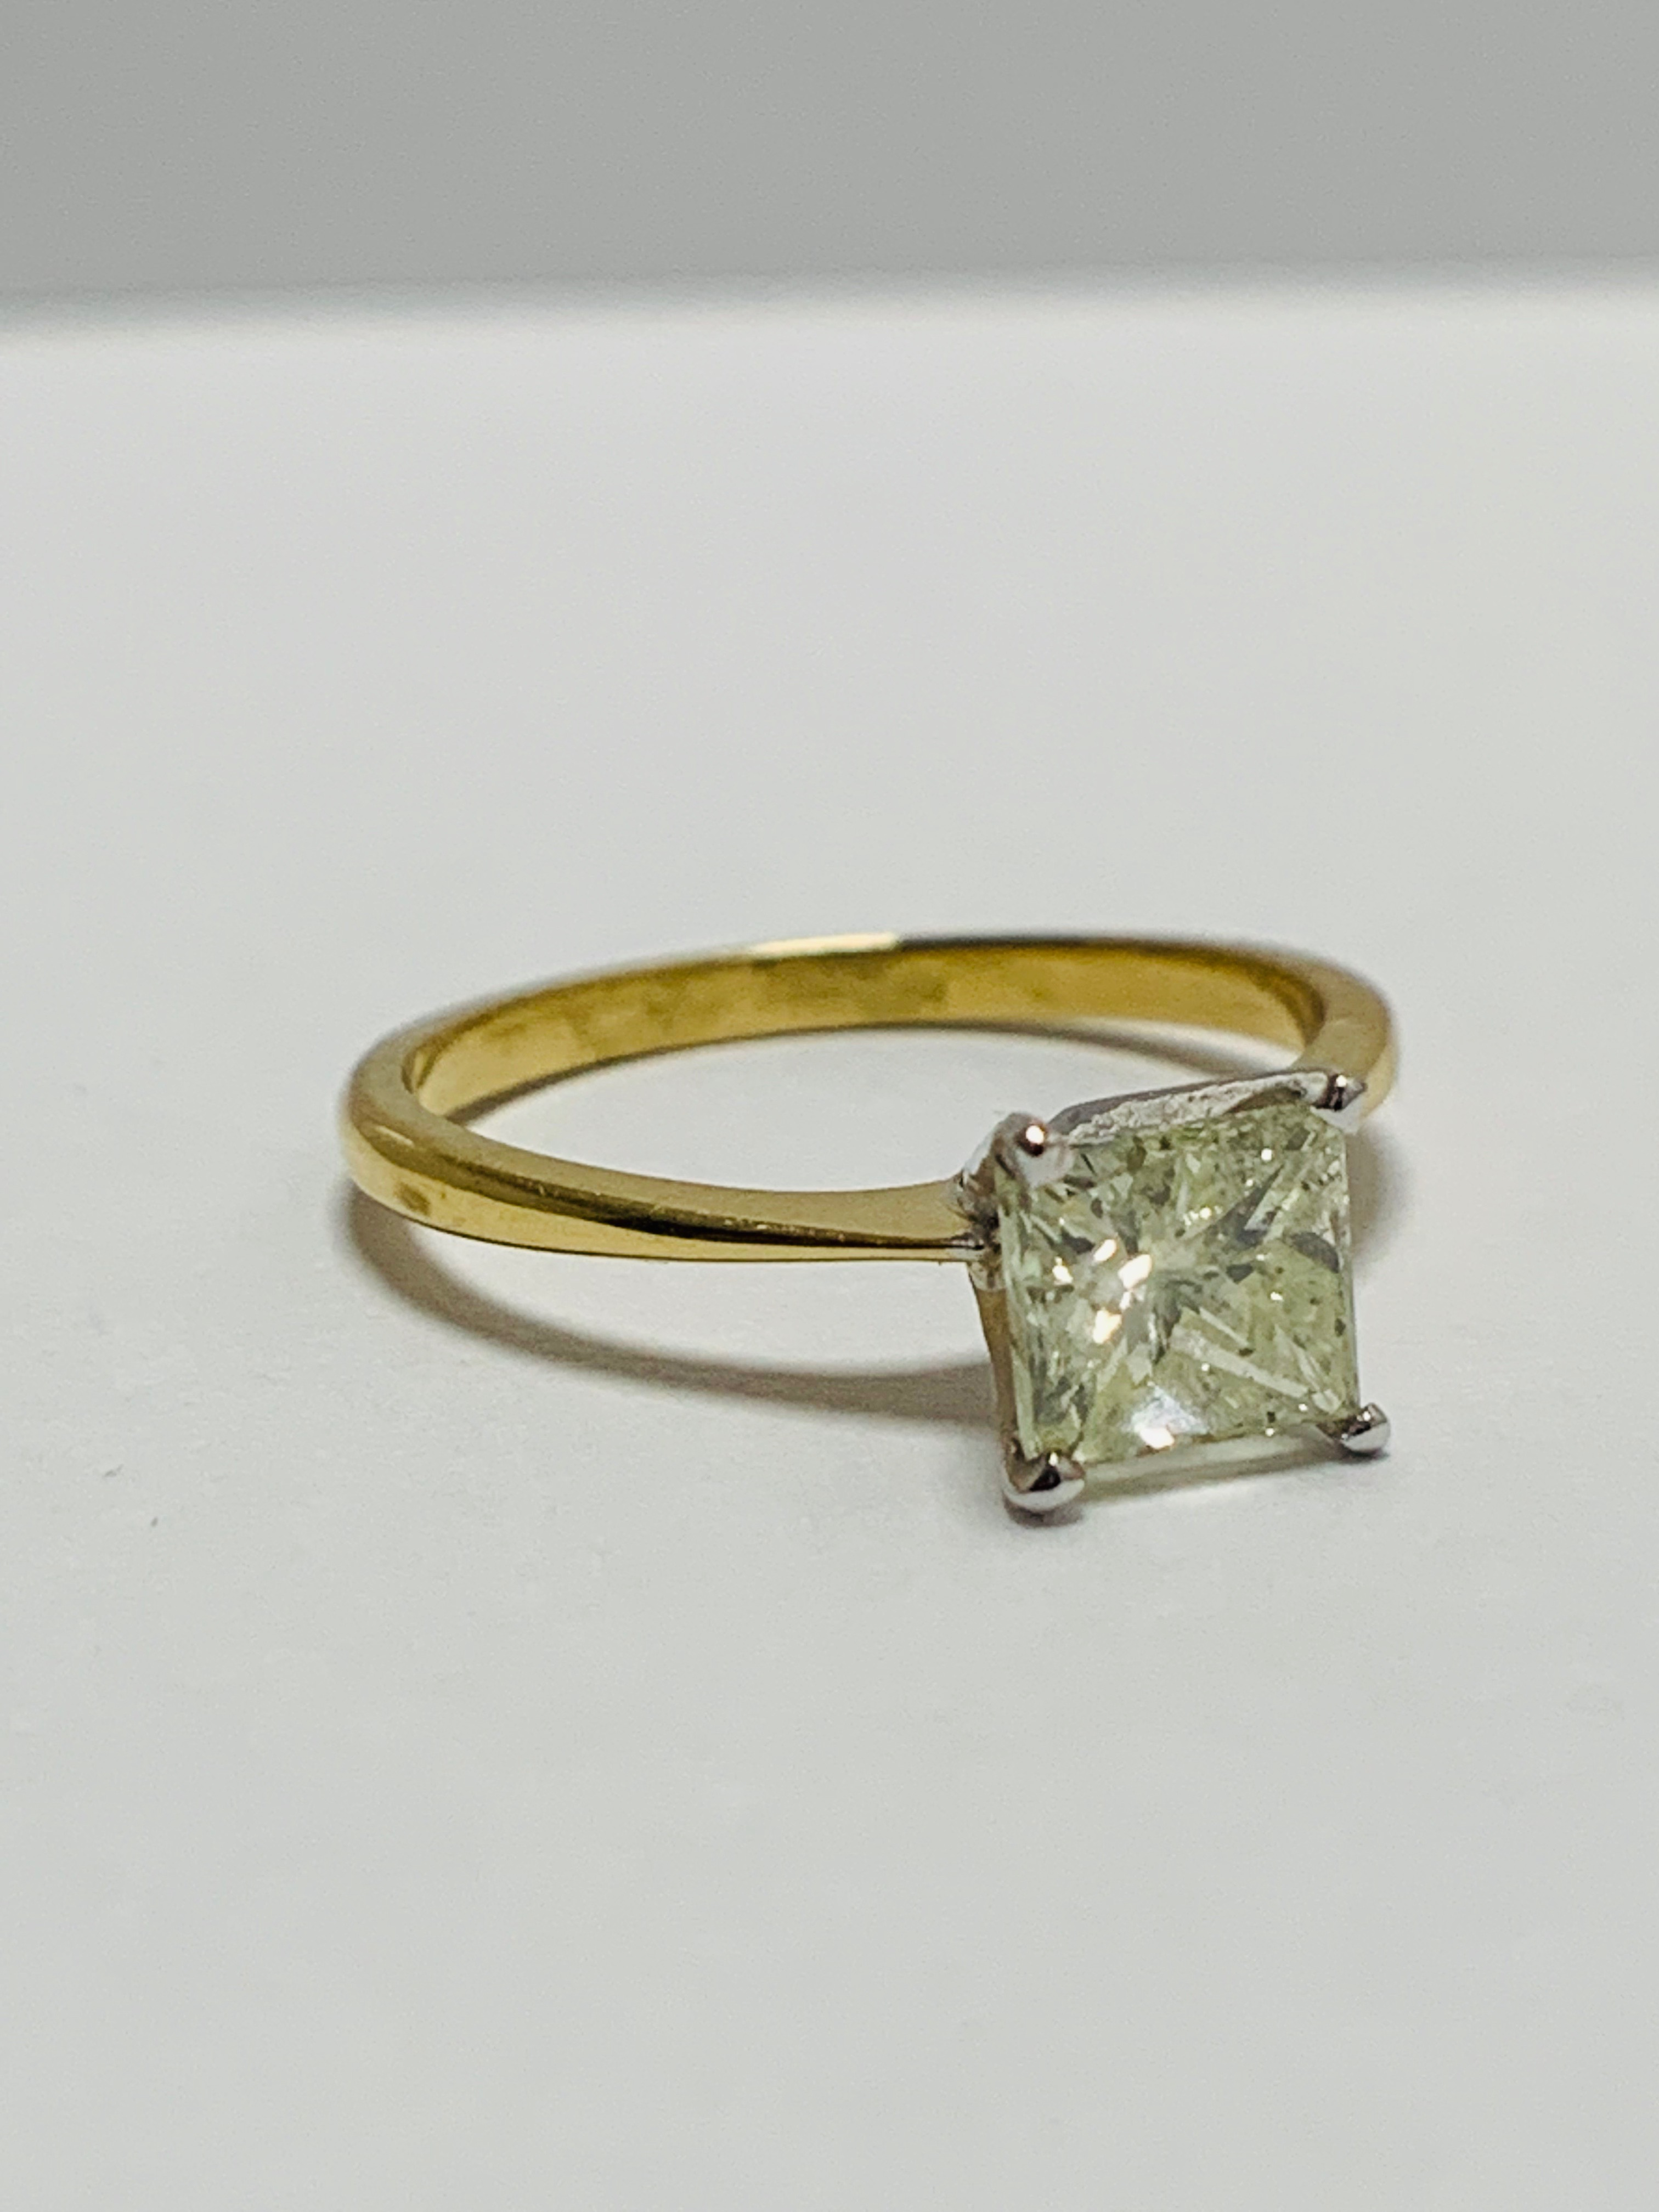 18ct Princess Cut natural diamond solitaire ring - Image 8 of 10